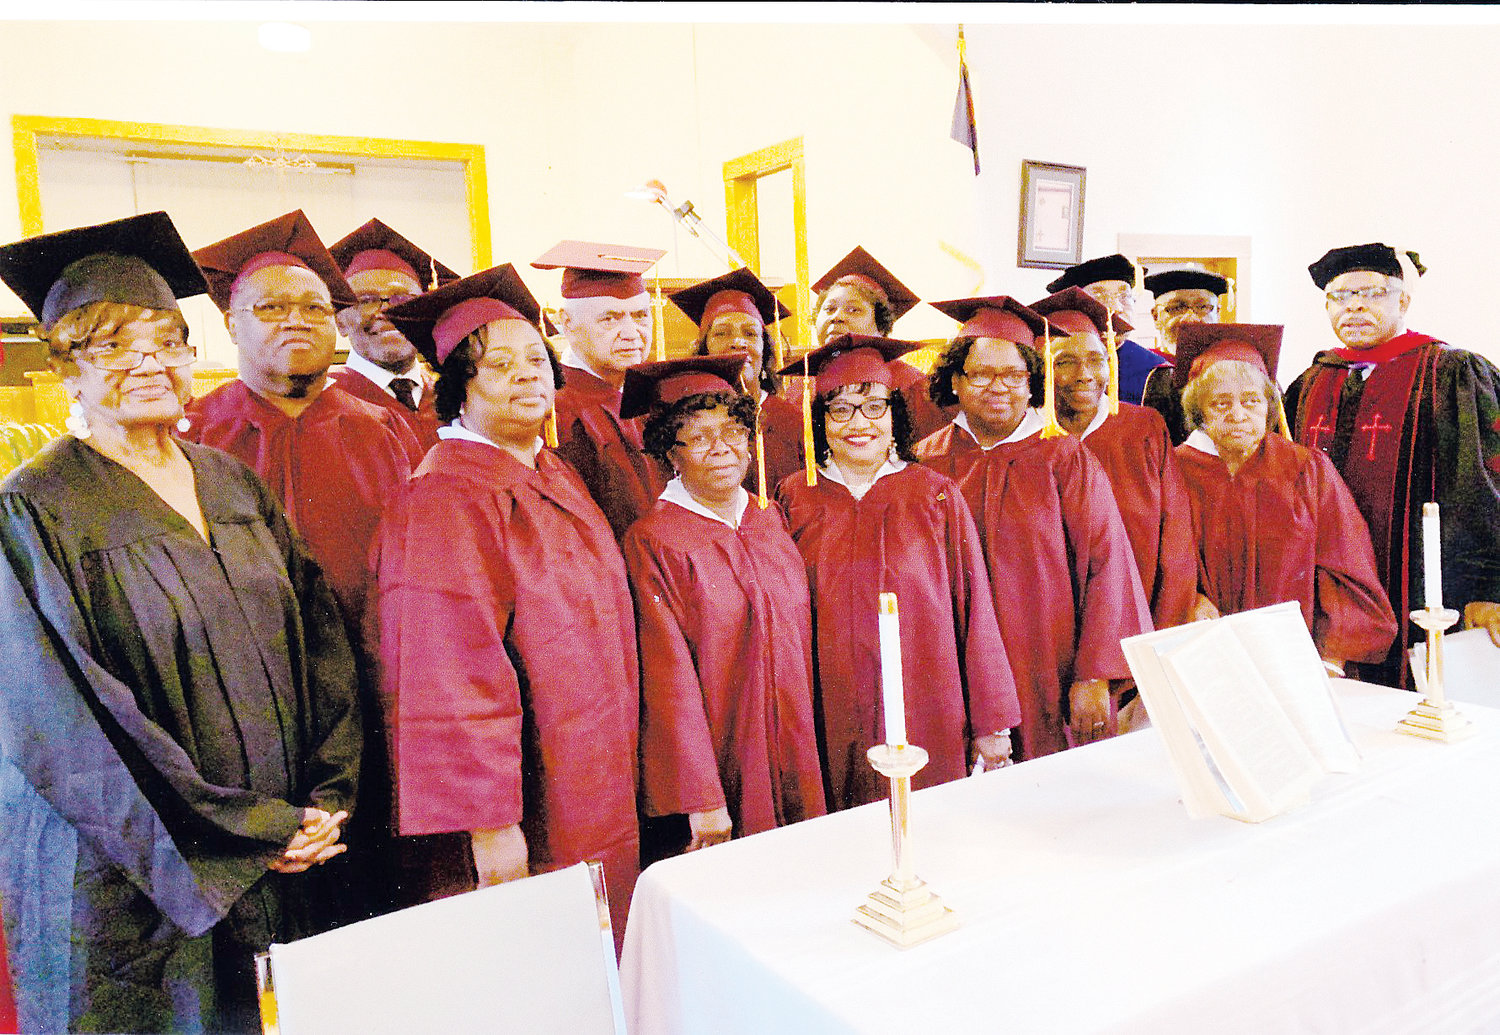 Professors and graduates of the Northern Piedmont Bible Institute include, front row from left, Pat Lee, Martha Winstead, Brenda McEachin, Elizabeth McCoy, Rosa Hester, Lou E. Daye, Beryl Riley and Dr. Langston Logan Sr.; back row from left, Ronnie Torain, Earnest Jefferies, George Naylor, Peggie Oliver, Jennifer Cates, Dr. James Richmond Sr. and Dr. Alfred Faulkner.